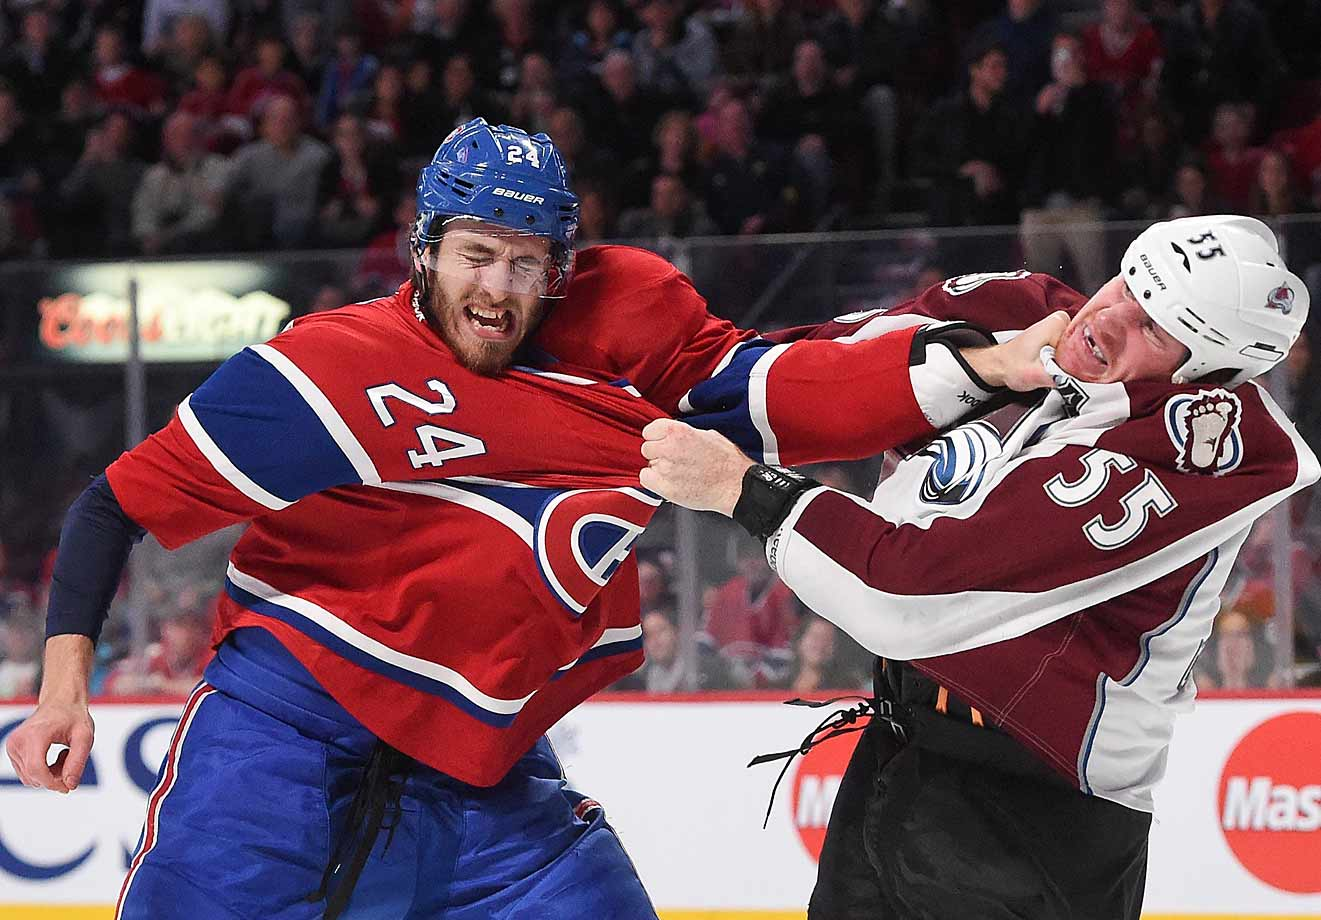 An exchange of fistic pleasantries at the Bell Centre in Montreal on Oct. 18.